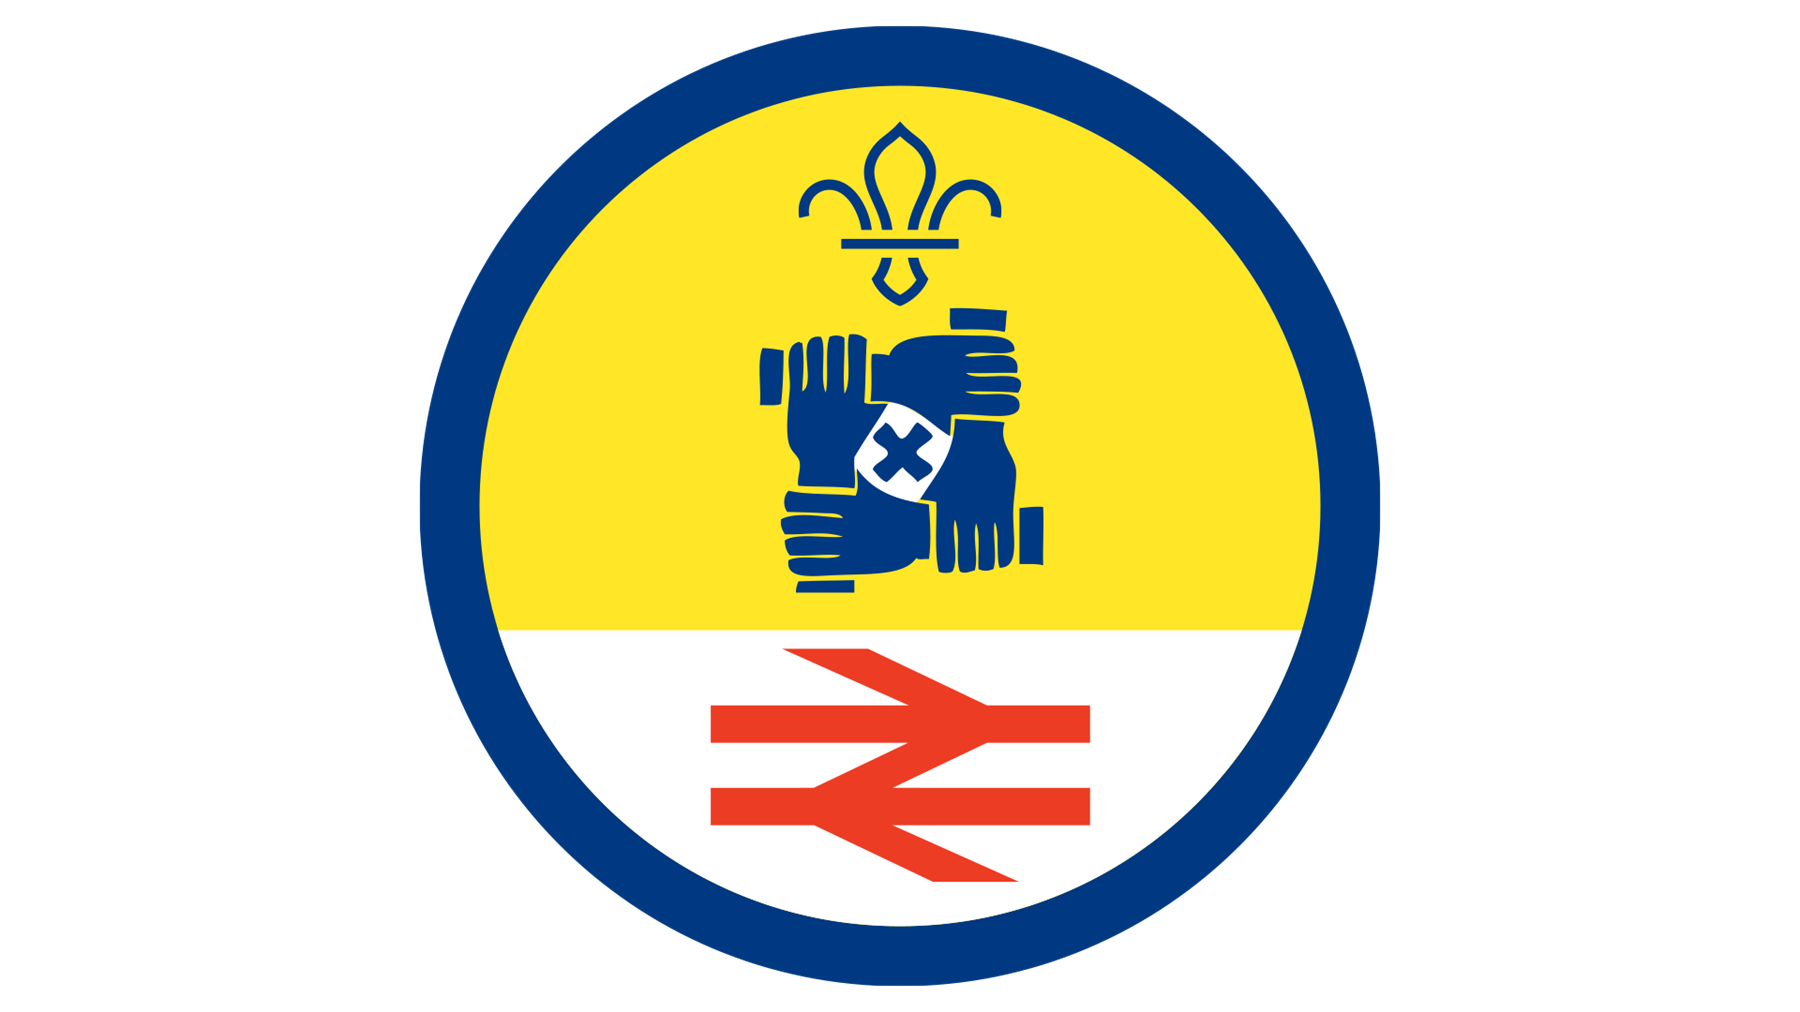 Activity Badge sponsored by the rail industry